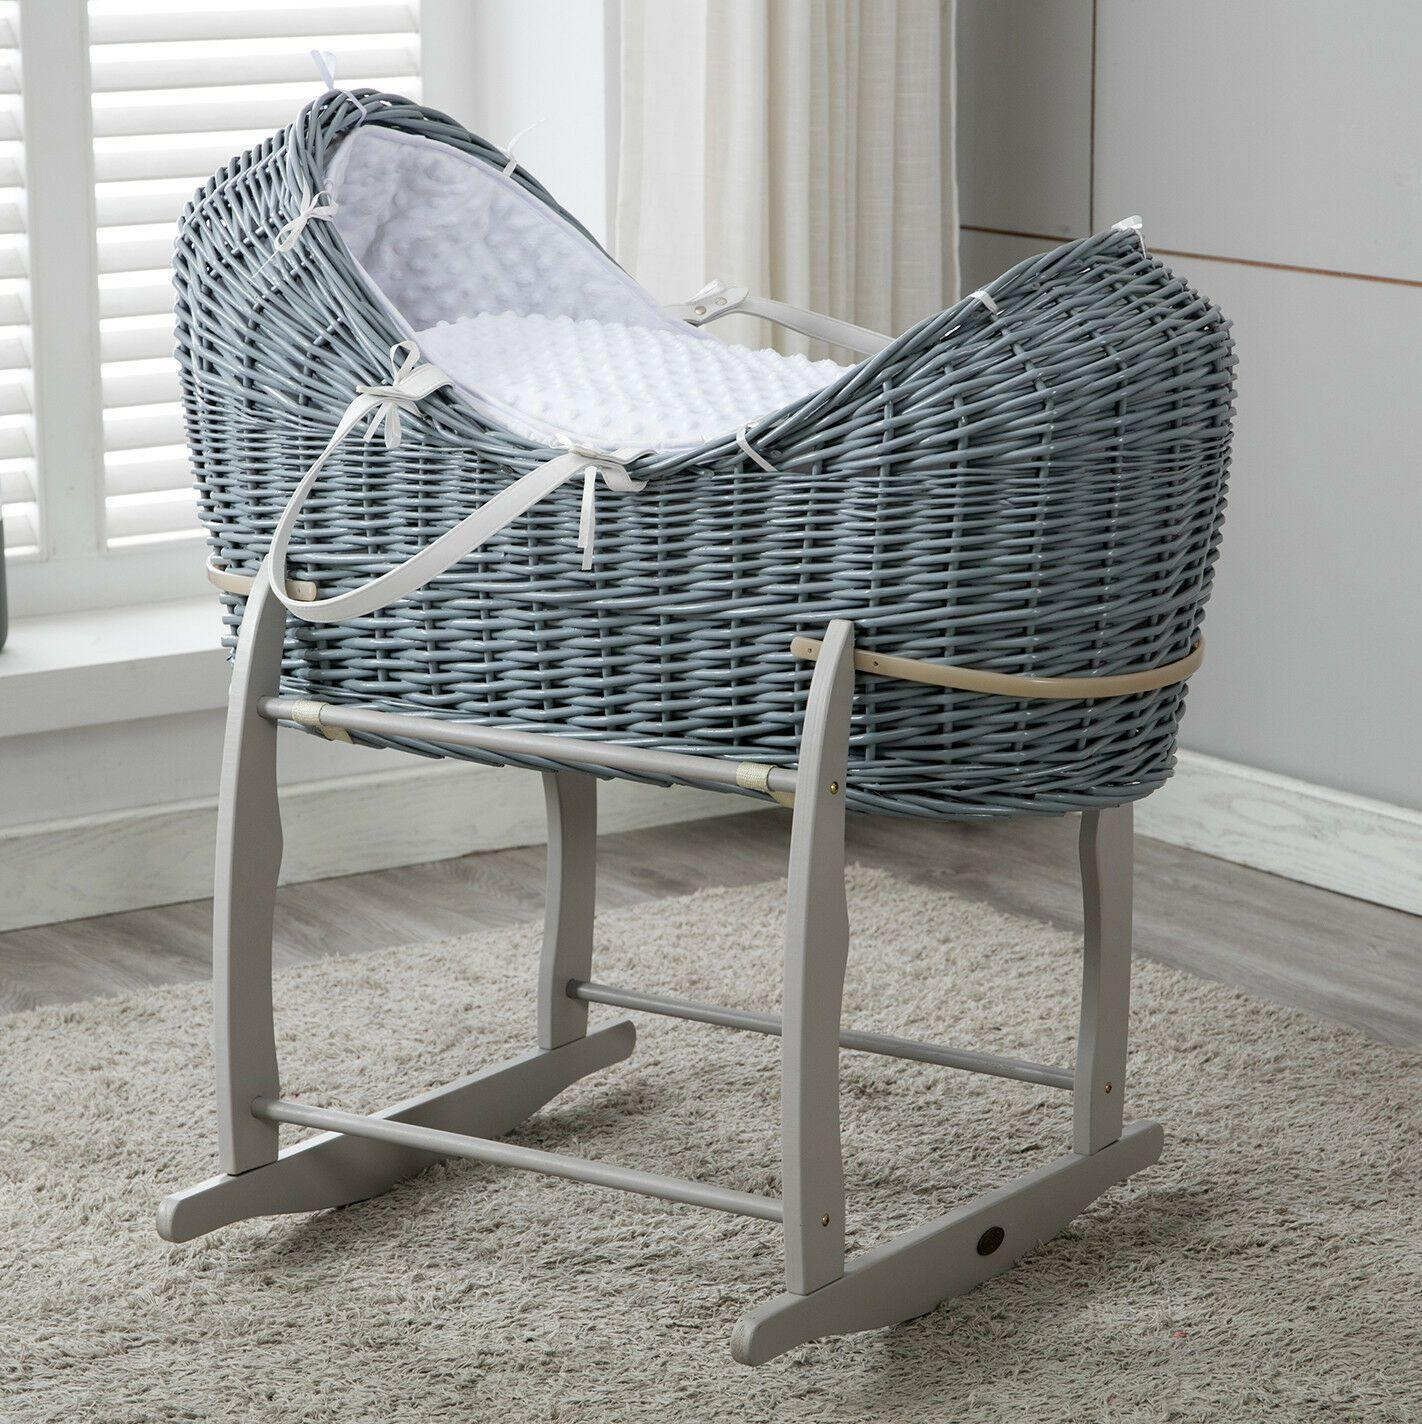 Full Set Moses Basket and Mattress